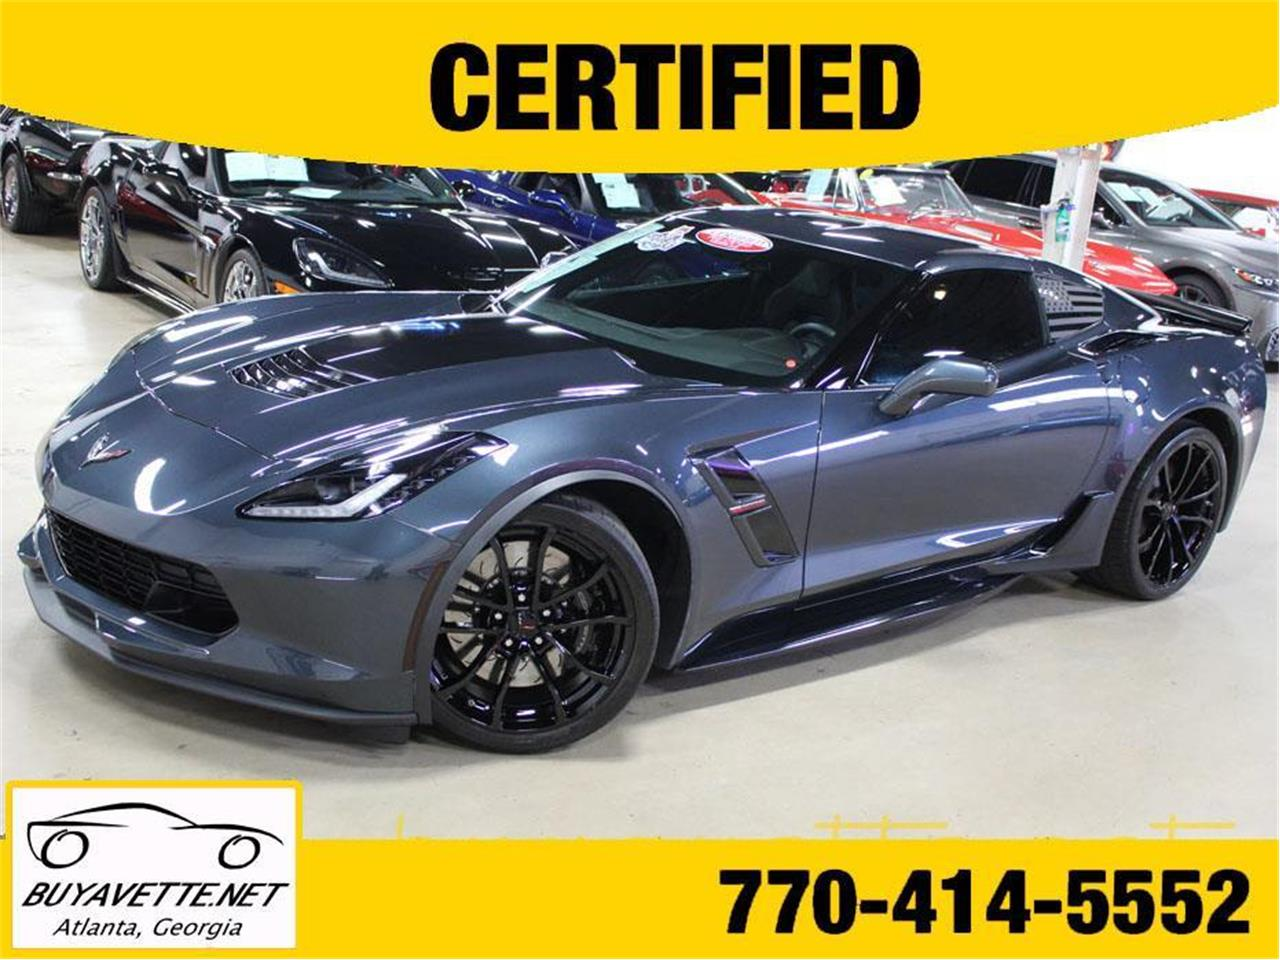 2019 Chevrolet Corvette (CC-1423490) for sale in Atlanta, Georgia